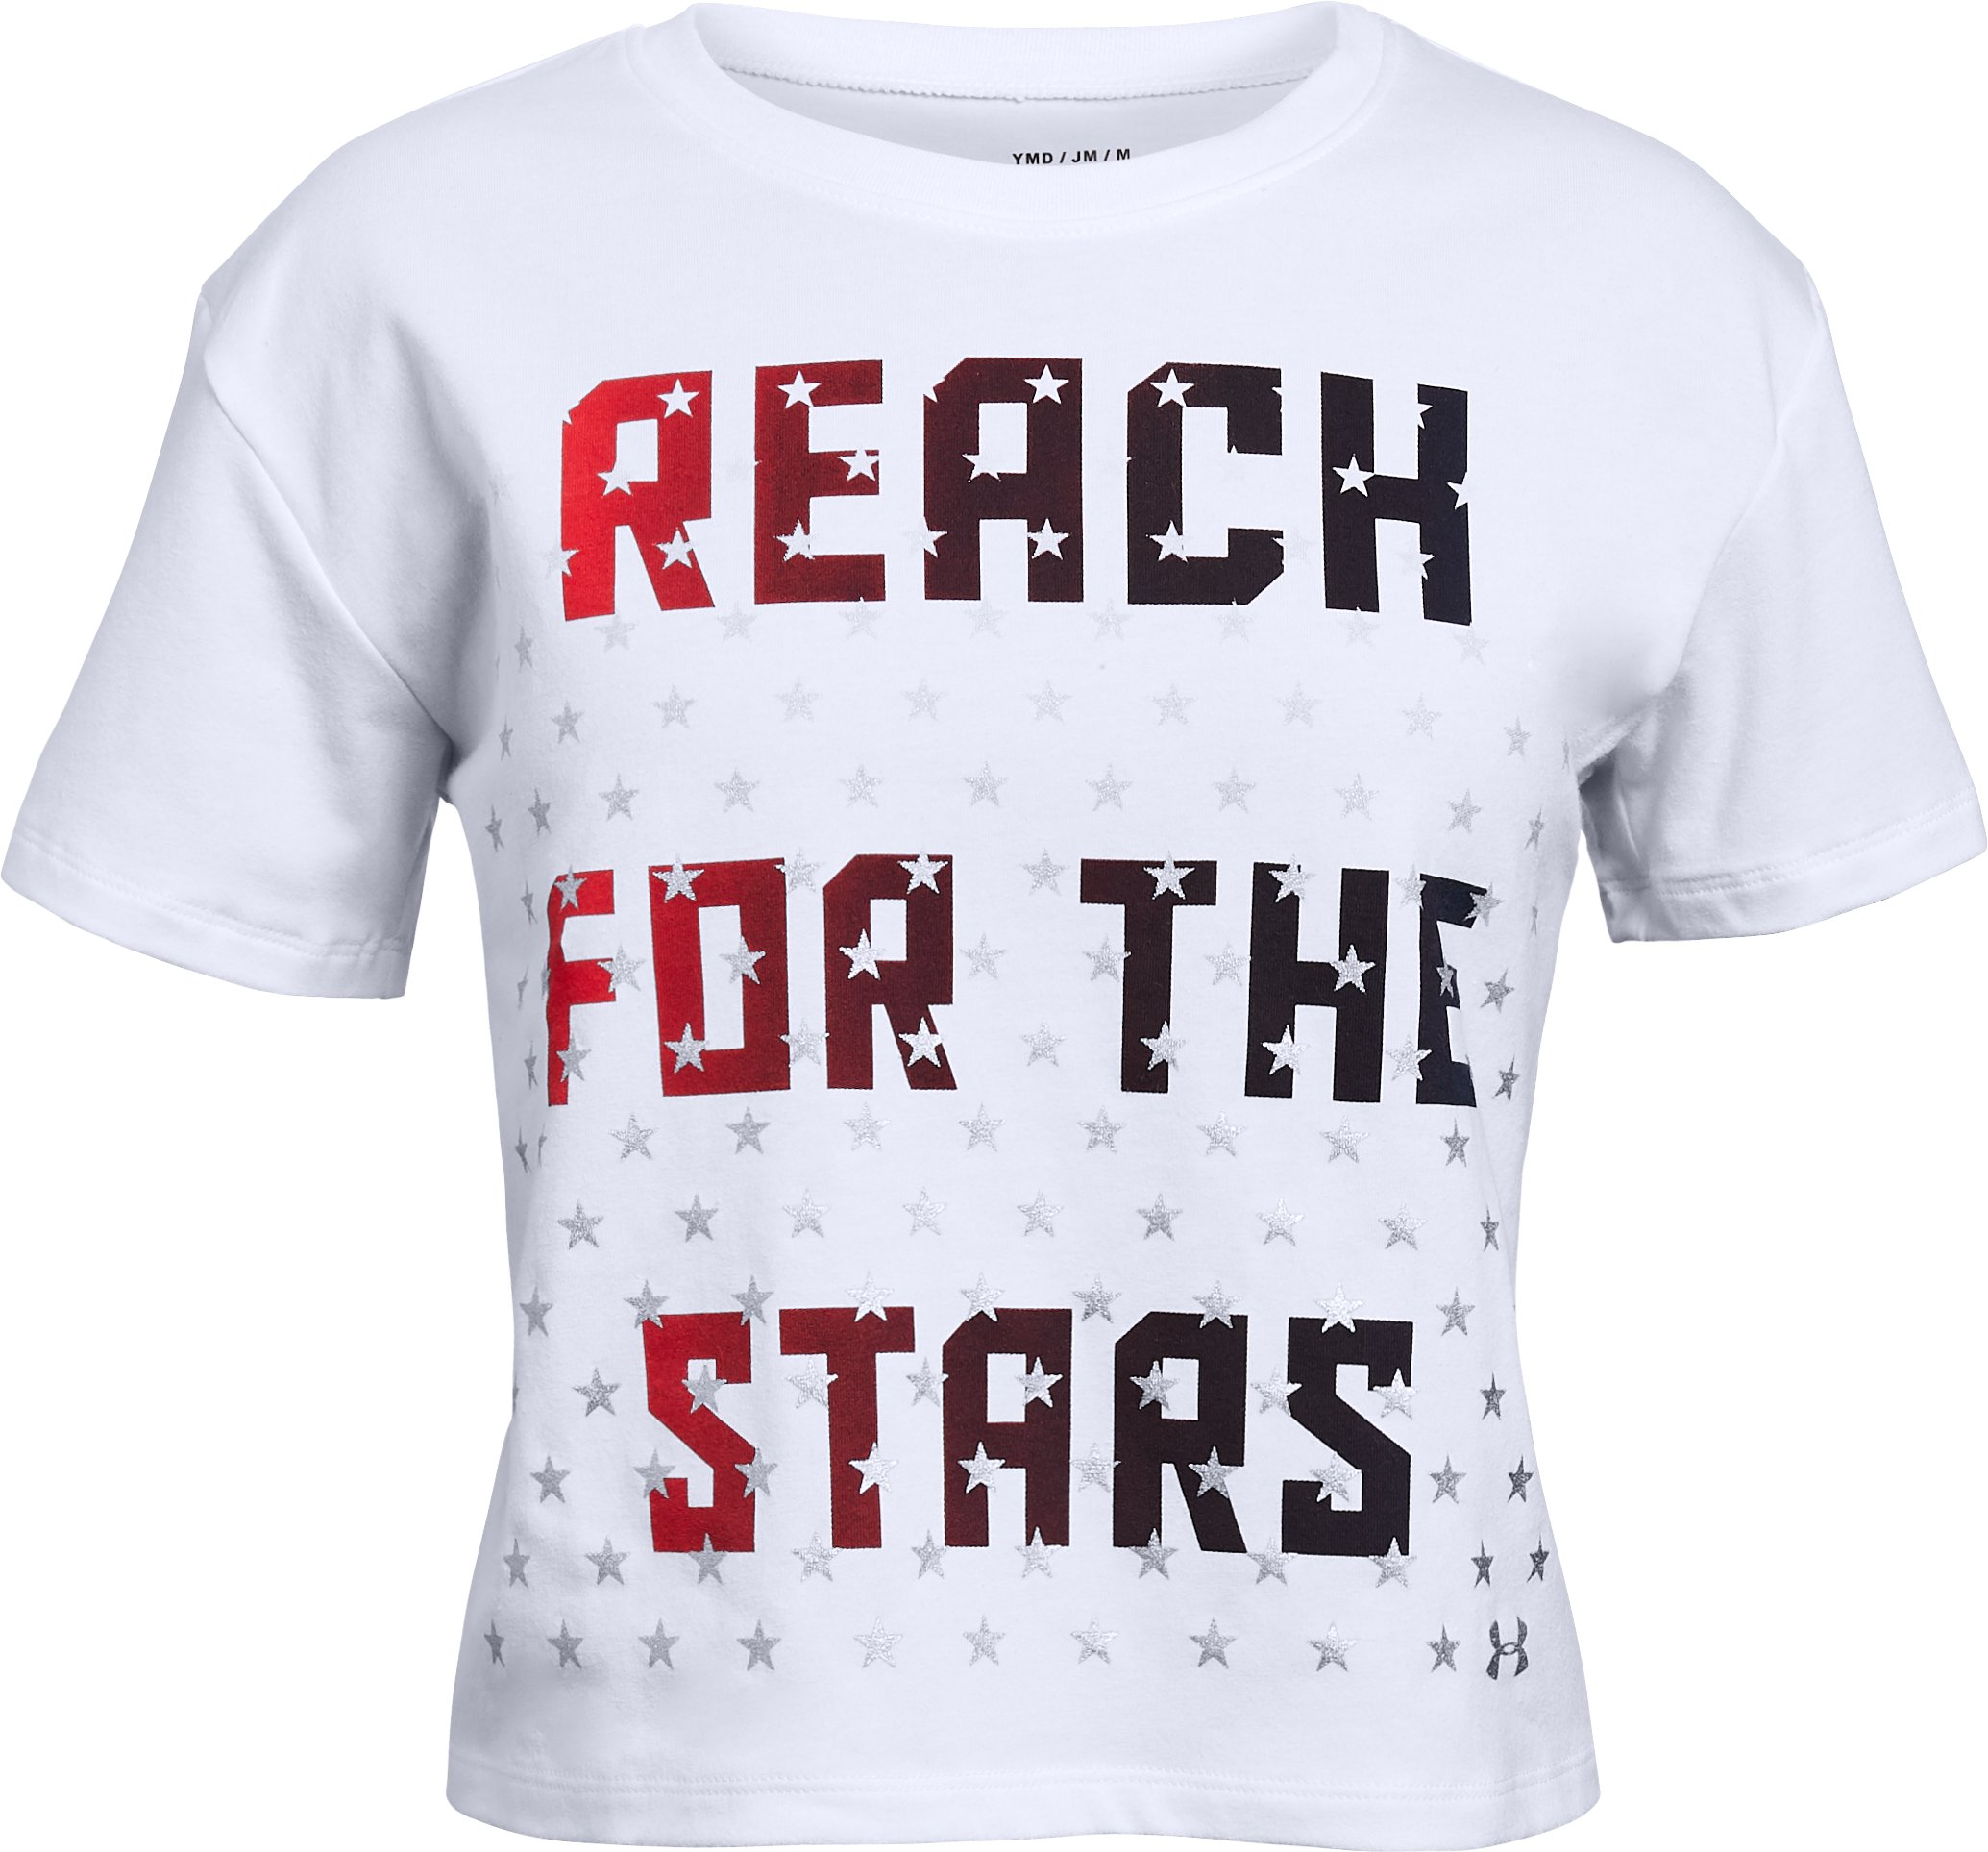 Girls' UA USA Reach Stars T-Shirt, White